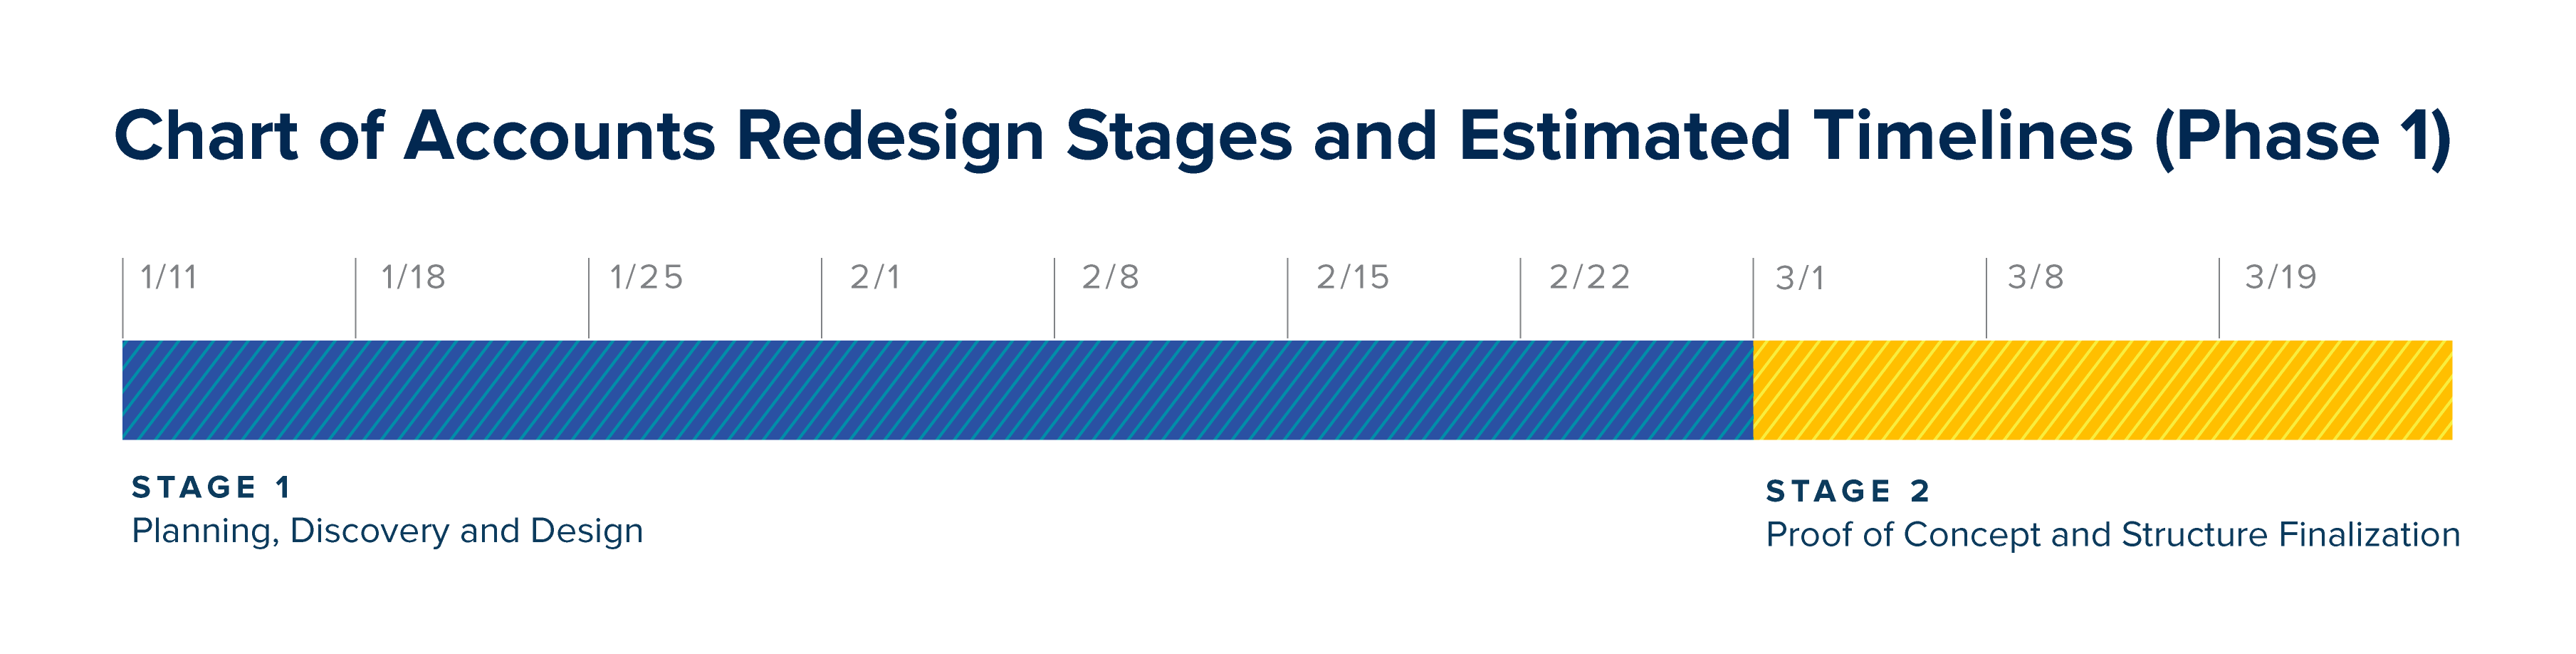 Chart of Accounts Redesign Stages and Estimated Timelines (Phase 1). Stage 1: planning, discovery and design starts January 11th and goes until February 22. Stage 2: proof of concept and structure finalization starts on March 3 and goes until March 19.